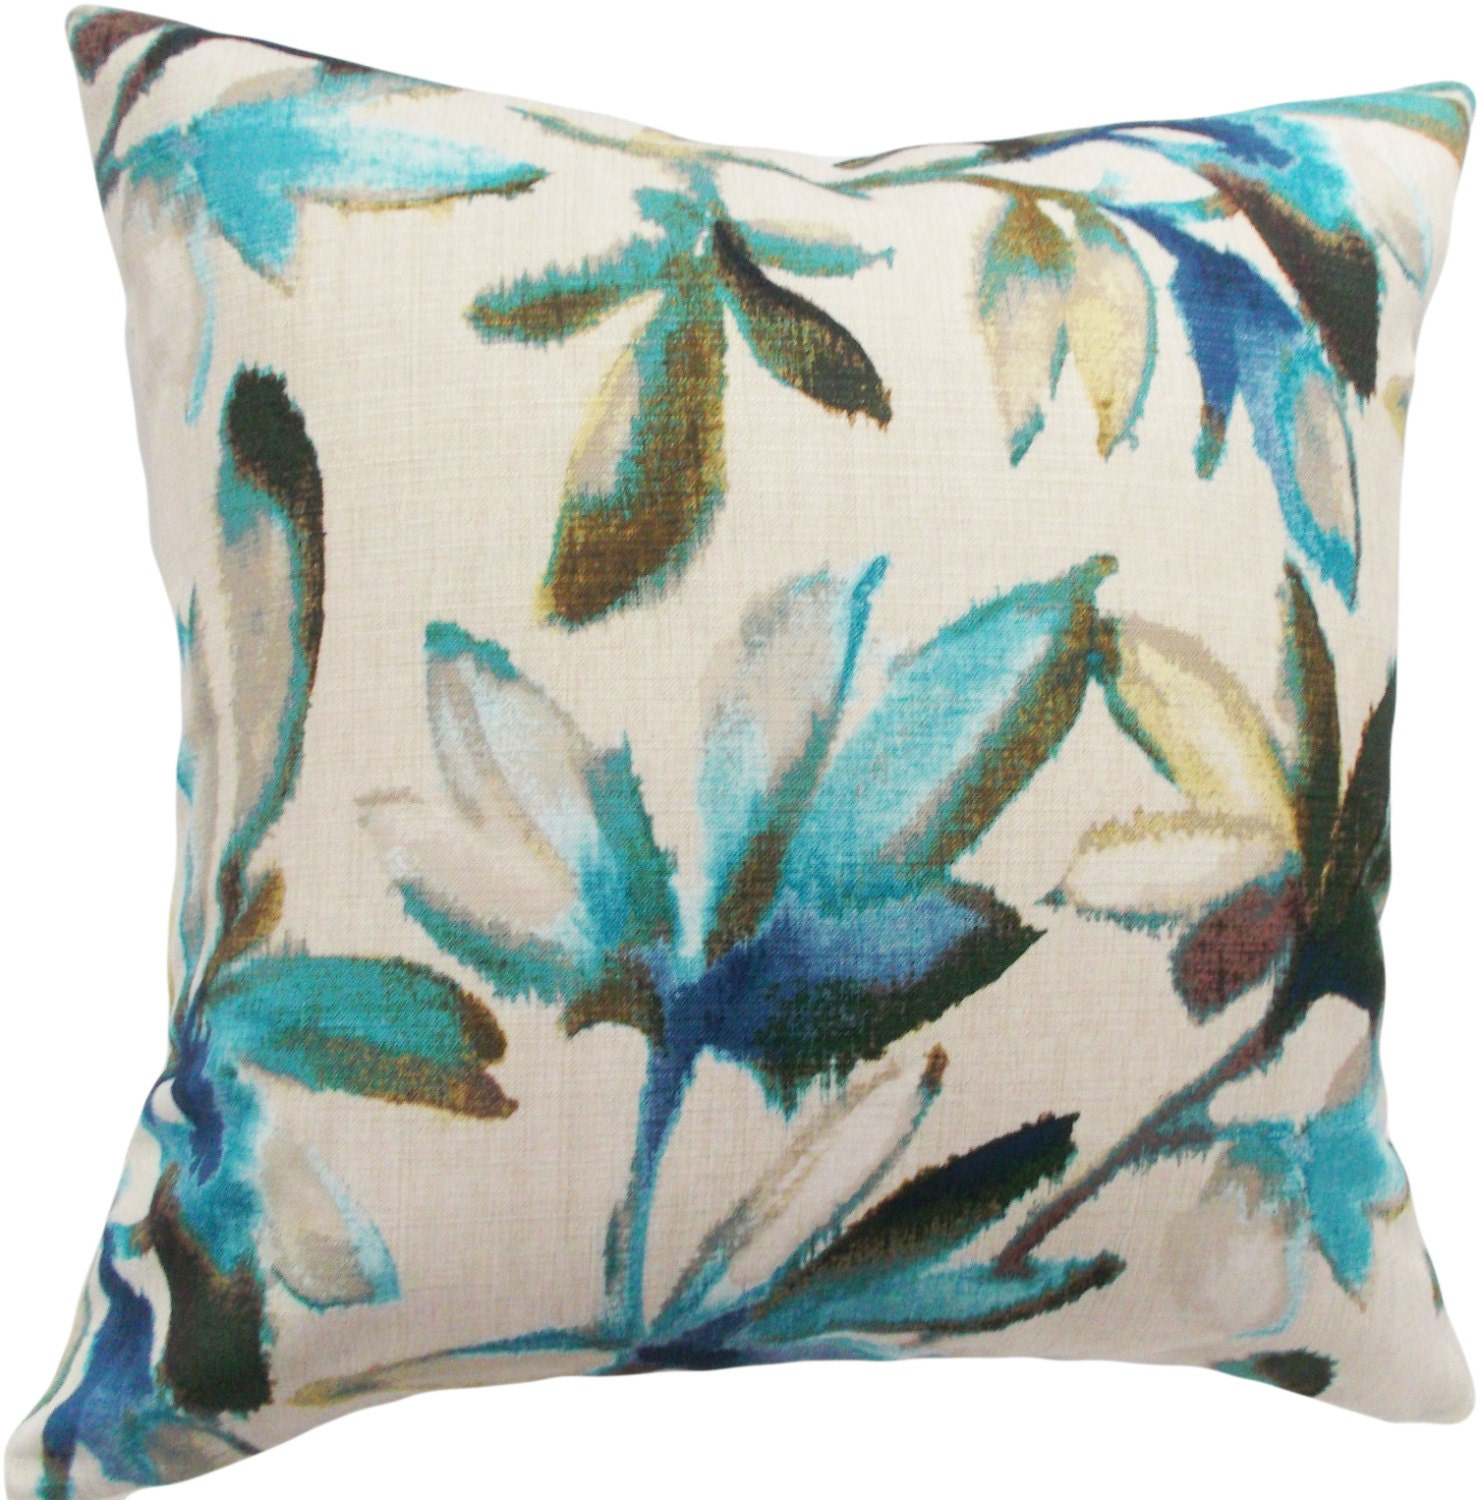 Decorative Pillow Turquoise : Turquoise Floral Ikat Decorative Pillow Cover Throw Pillow